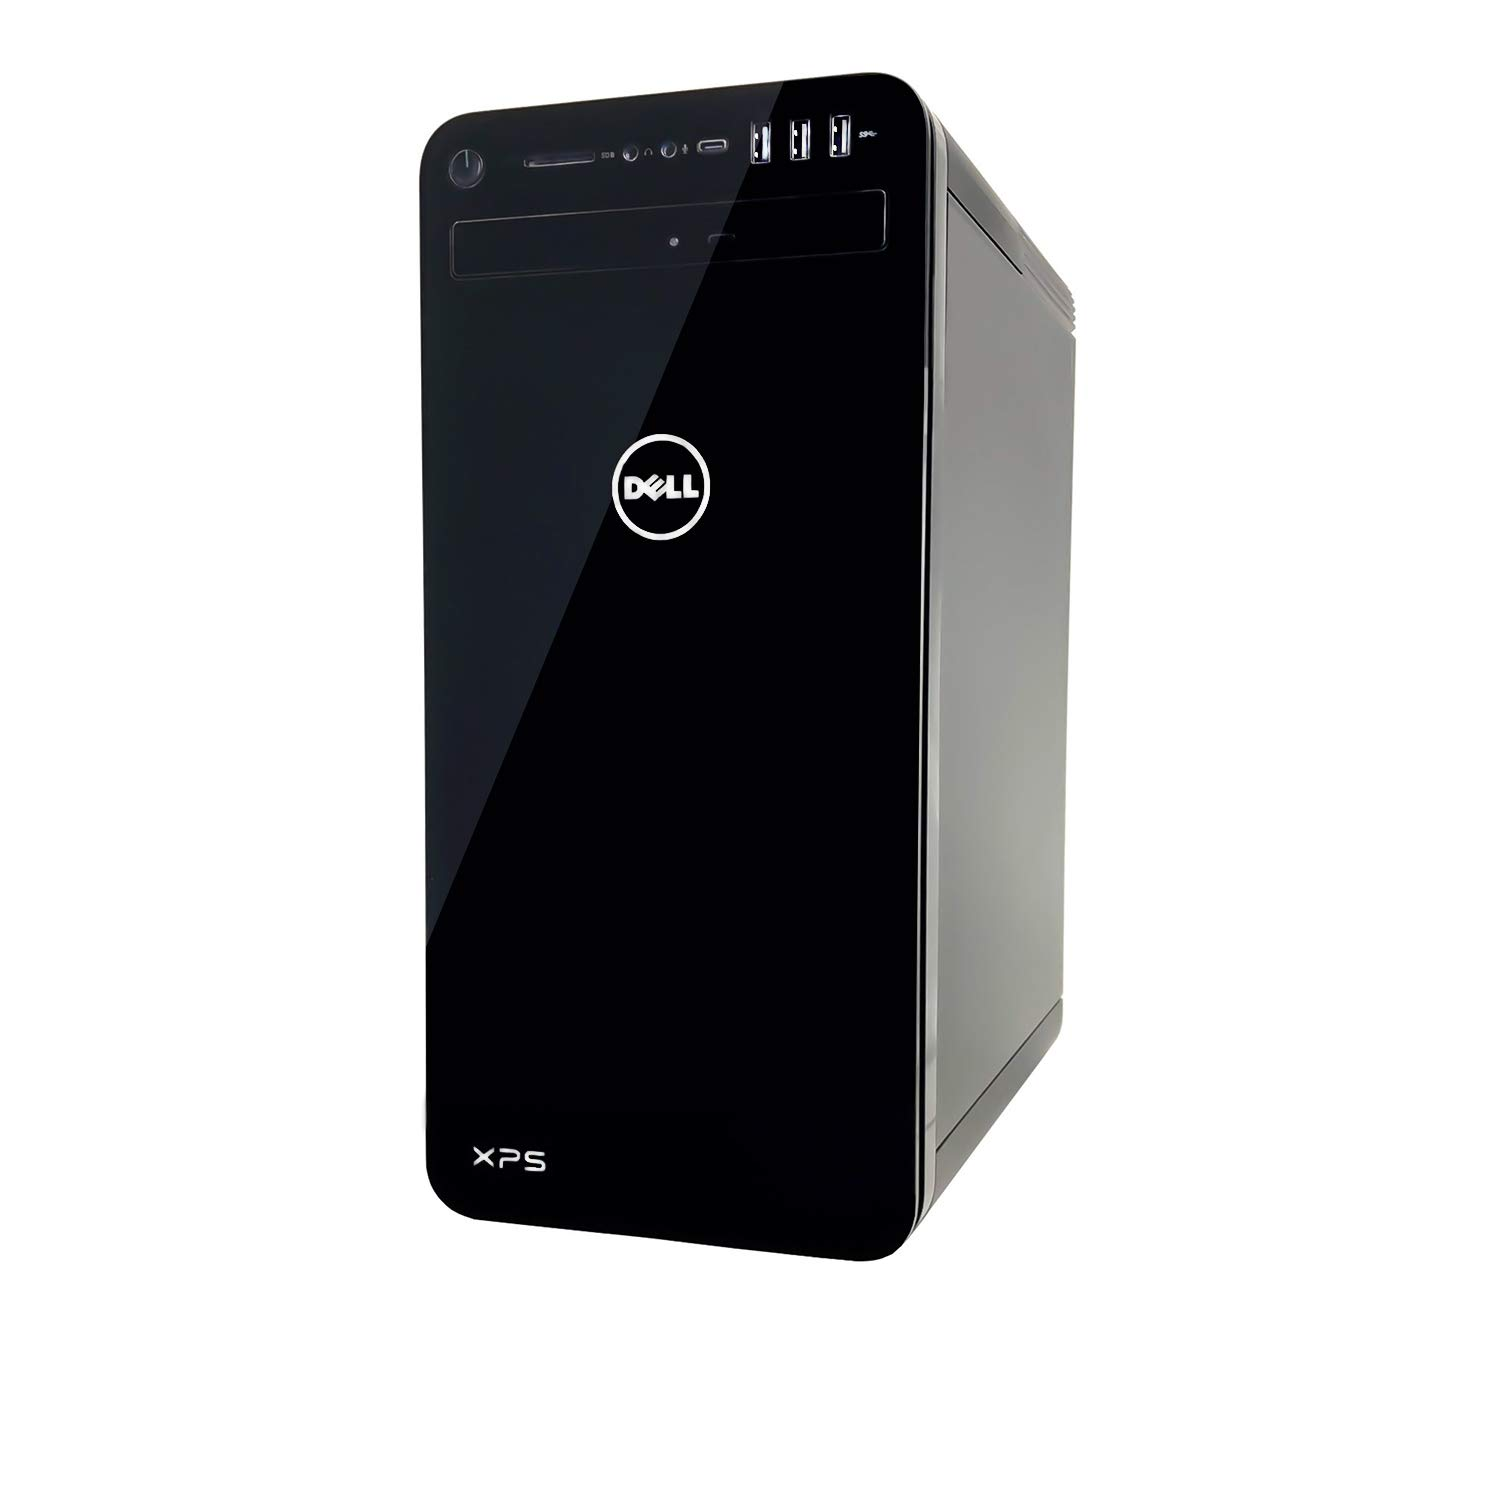 Dell XPS 8930-740BLK Tower Desktop - 8th Gen  Intel Core i7-8700 6-Core up  to 4 60 GHz, 16GB DDR4 Memory, 2TB SATA Hard Drive, 4GB Nvidia GeForce GTX